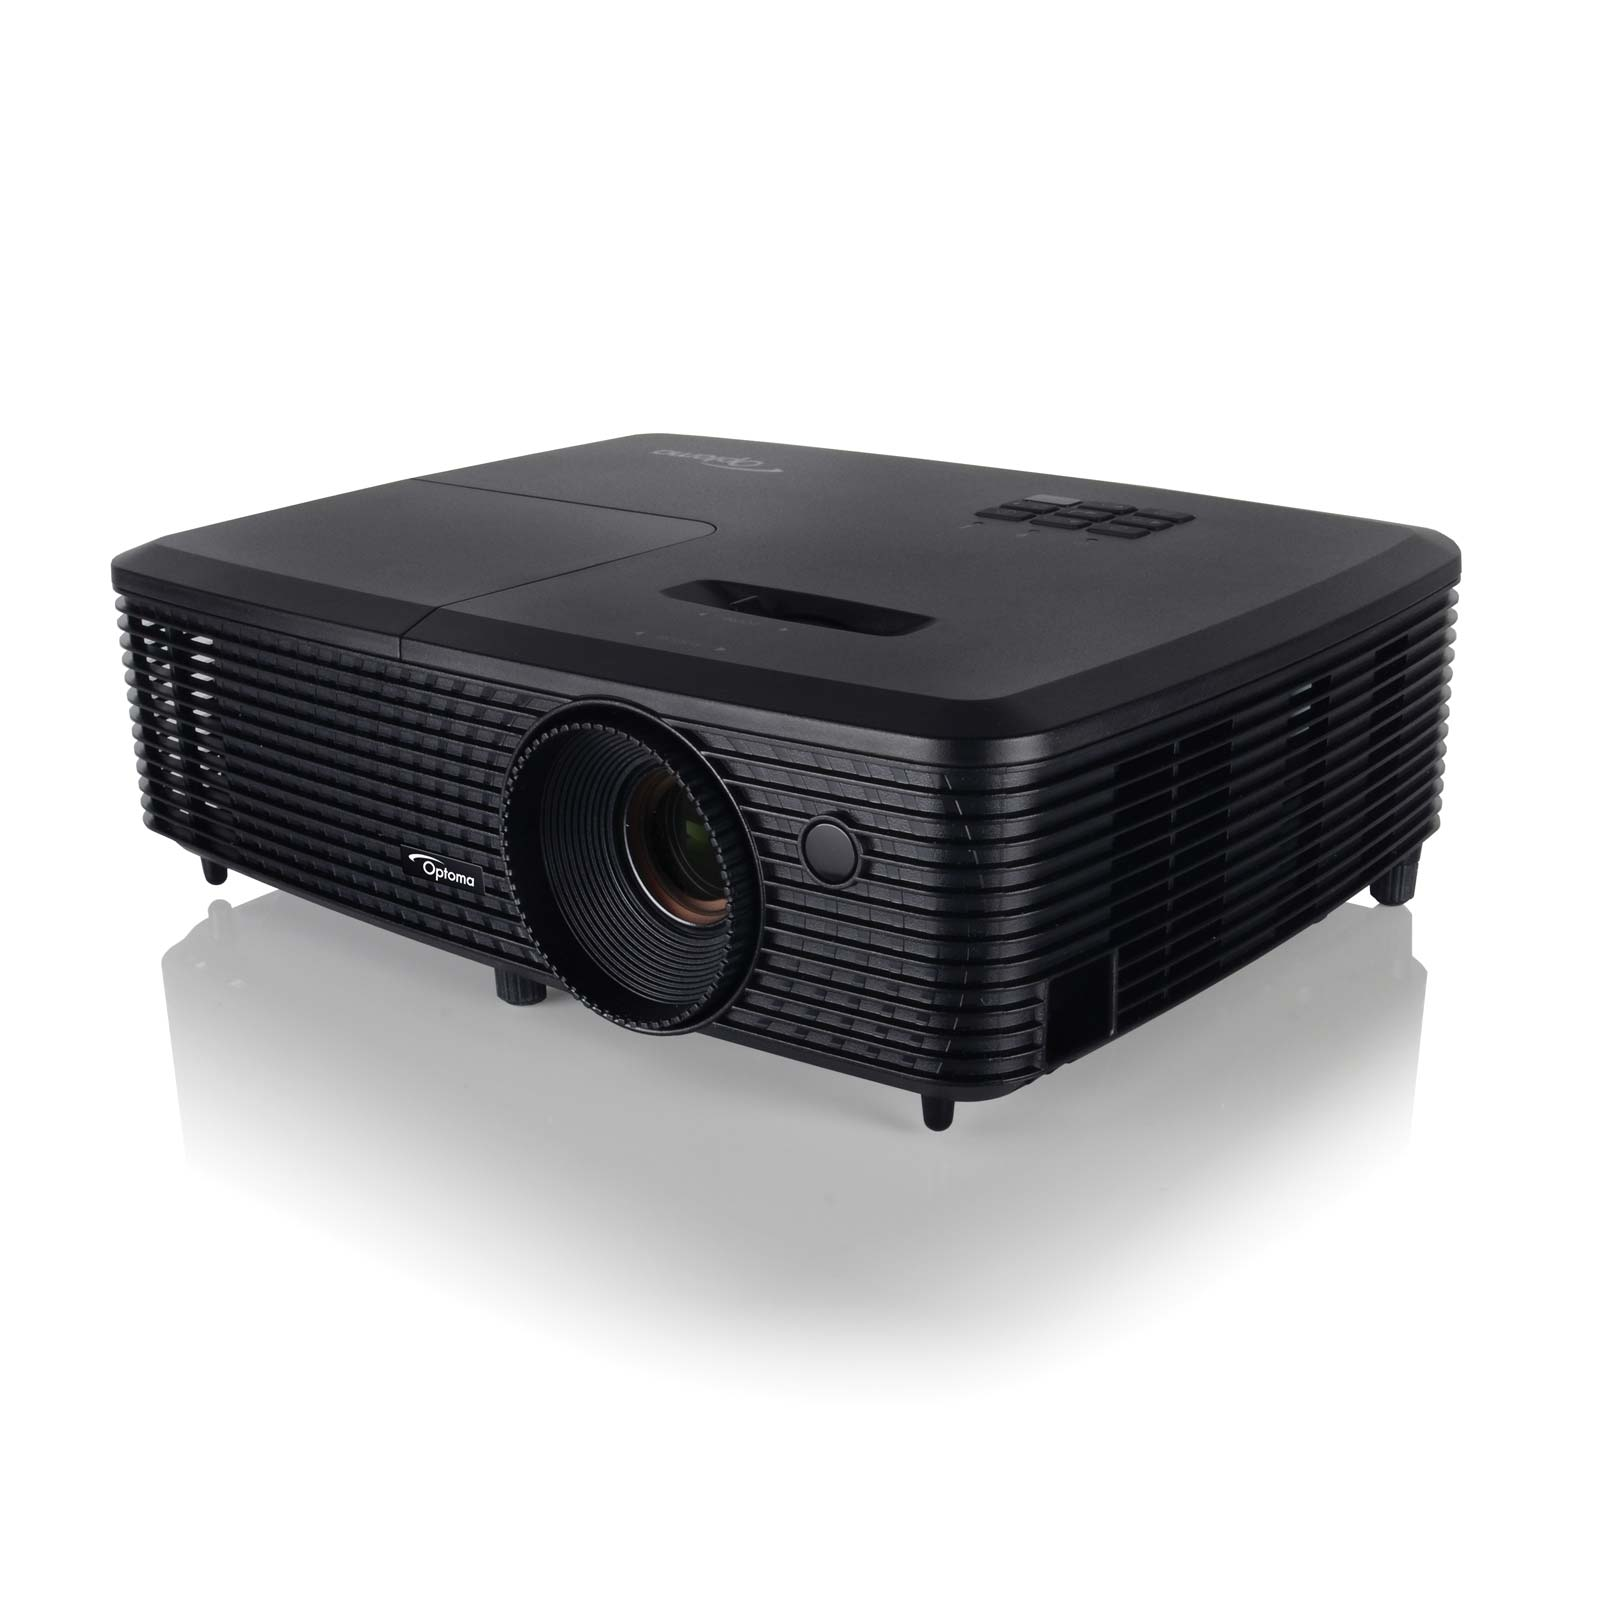 Optoma eh330 vid oprojecteur optoma sur ldlc - Support plafond videoprojecteur optoma ...